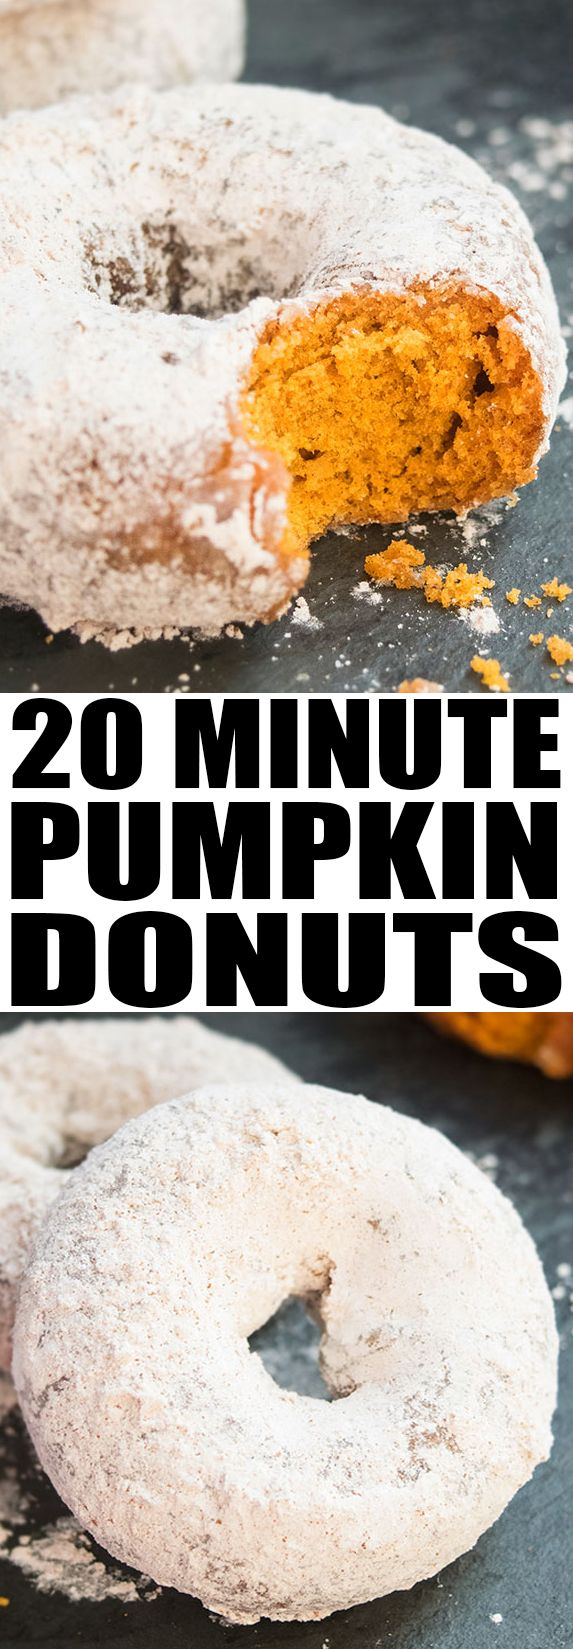 Quick and EASY PUMPKIN DONUTS recipe, made with just 4 ingredients. These baked pumpkin donuts start off with a cake mix and are covered in cinnamon sugar topping. From cakewhiz.com #pumpkin #donuts #dessert